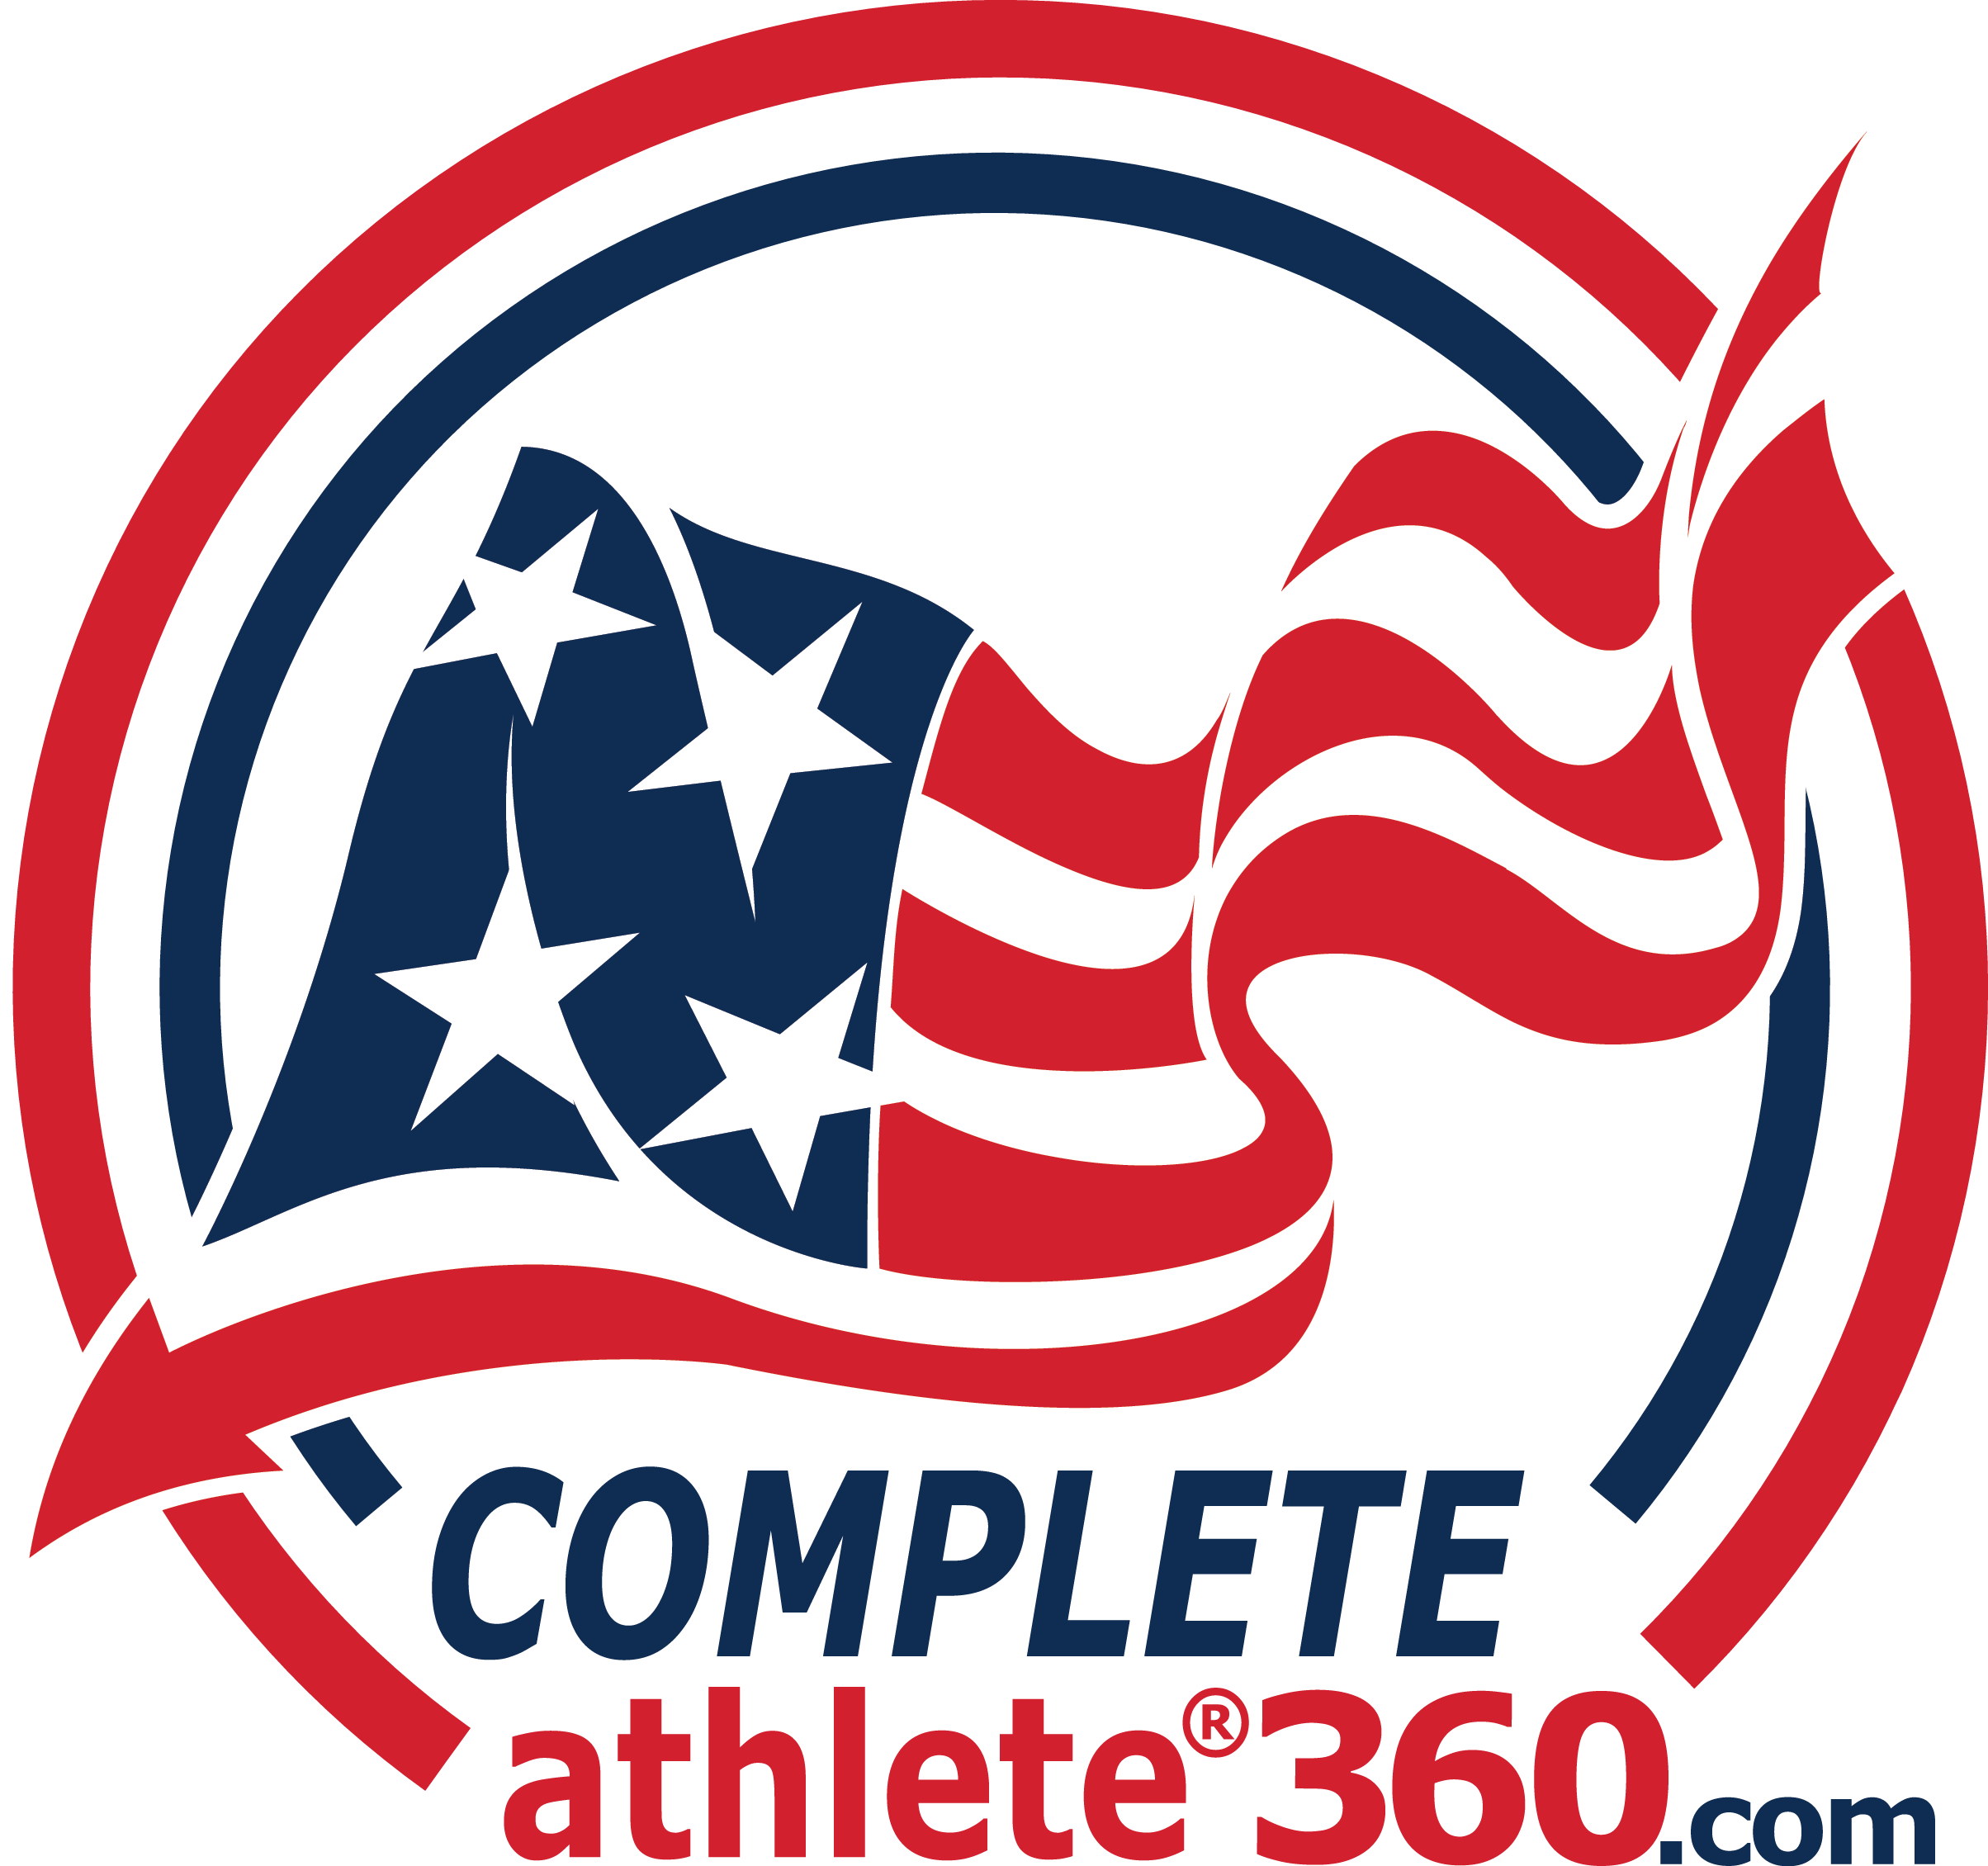 Complete Athlete 360